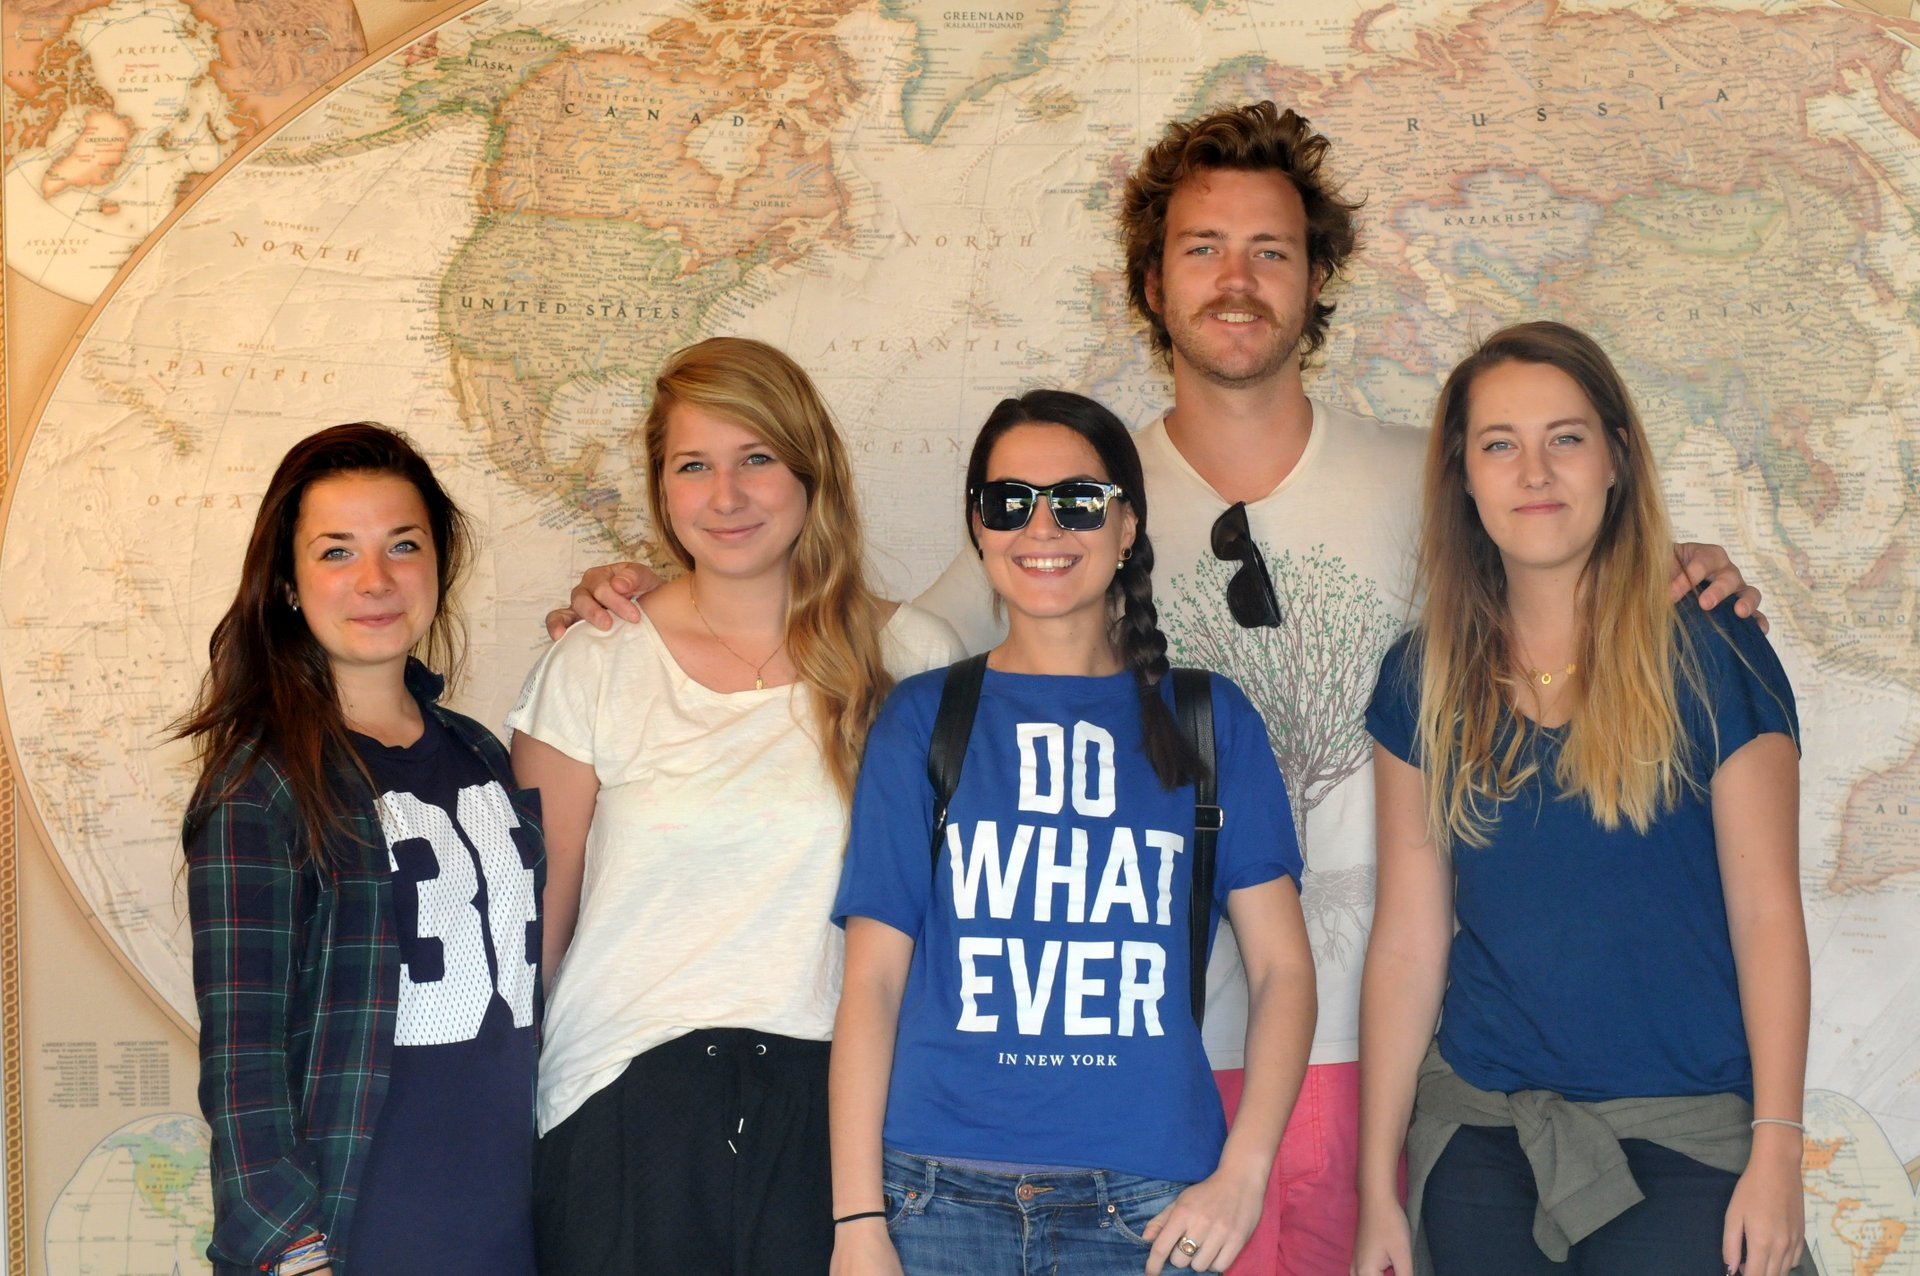 5 people standing in front of a large world map